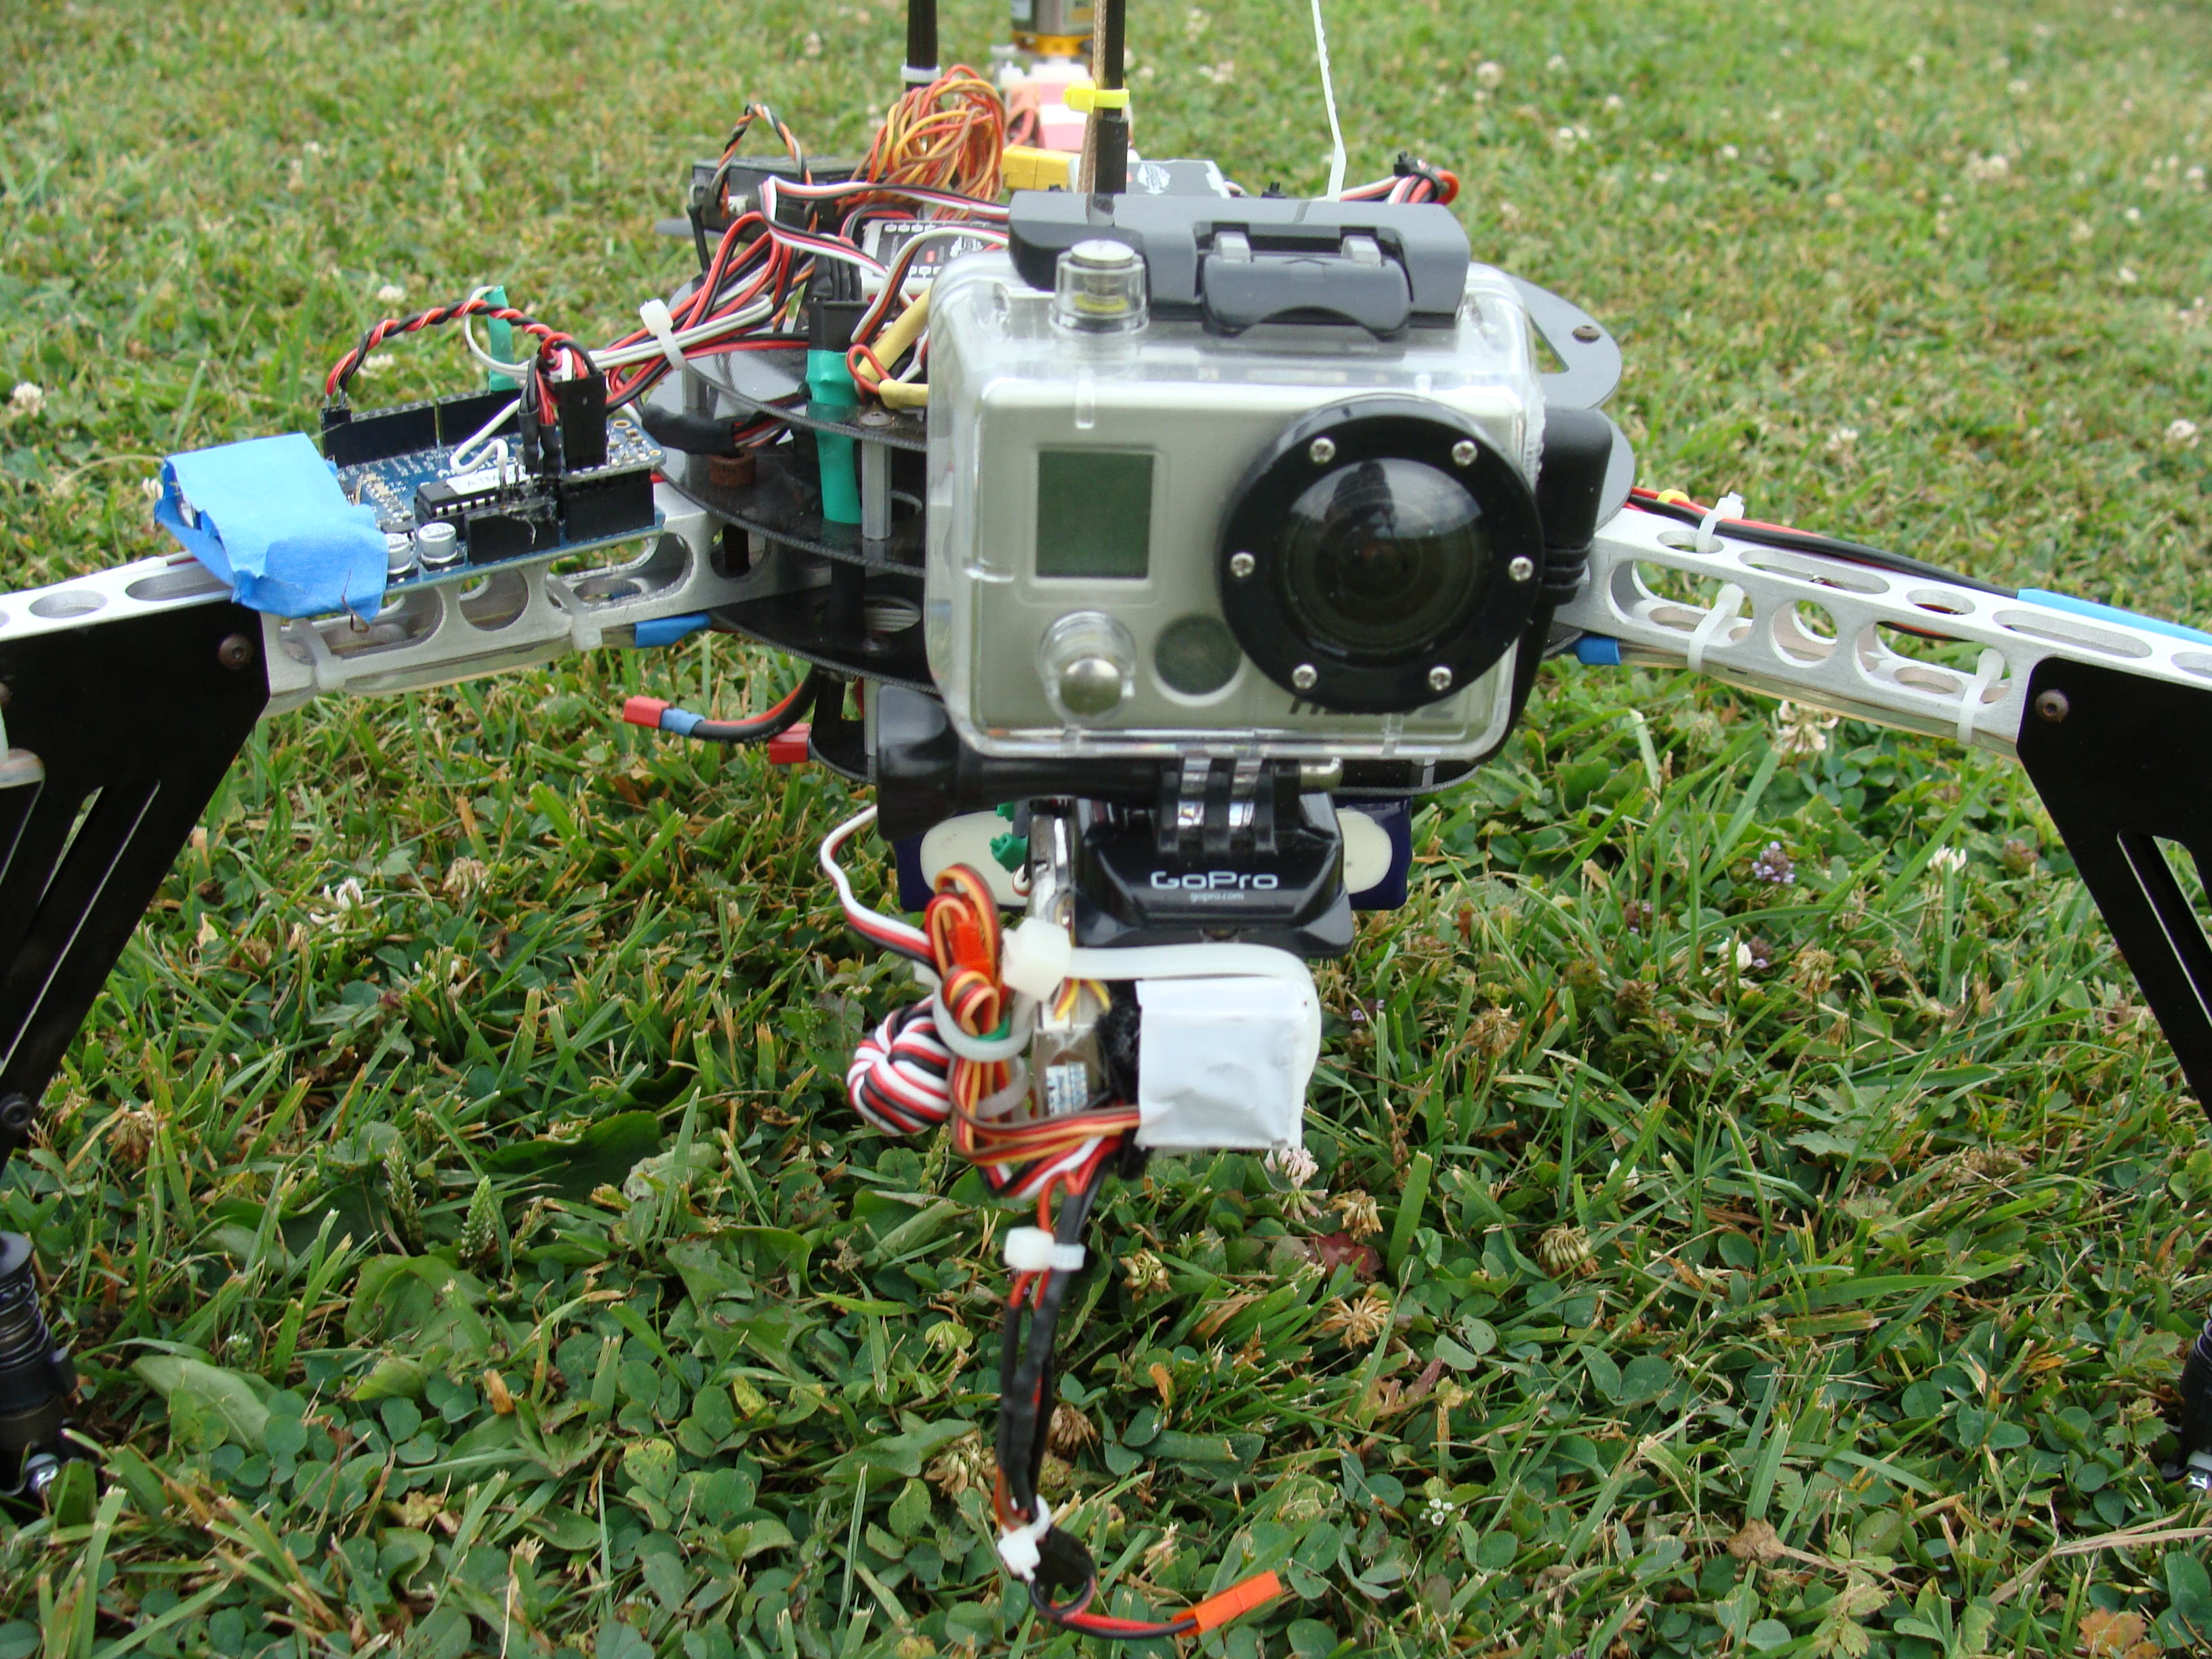 Multicopter Simple FPV Setup